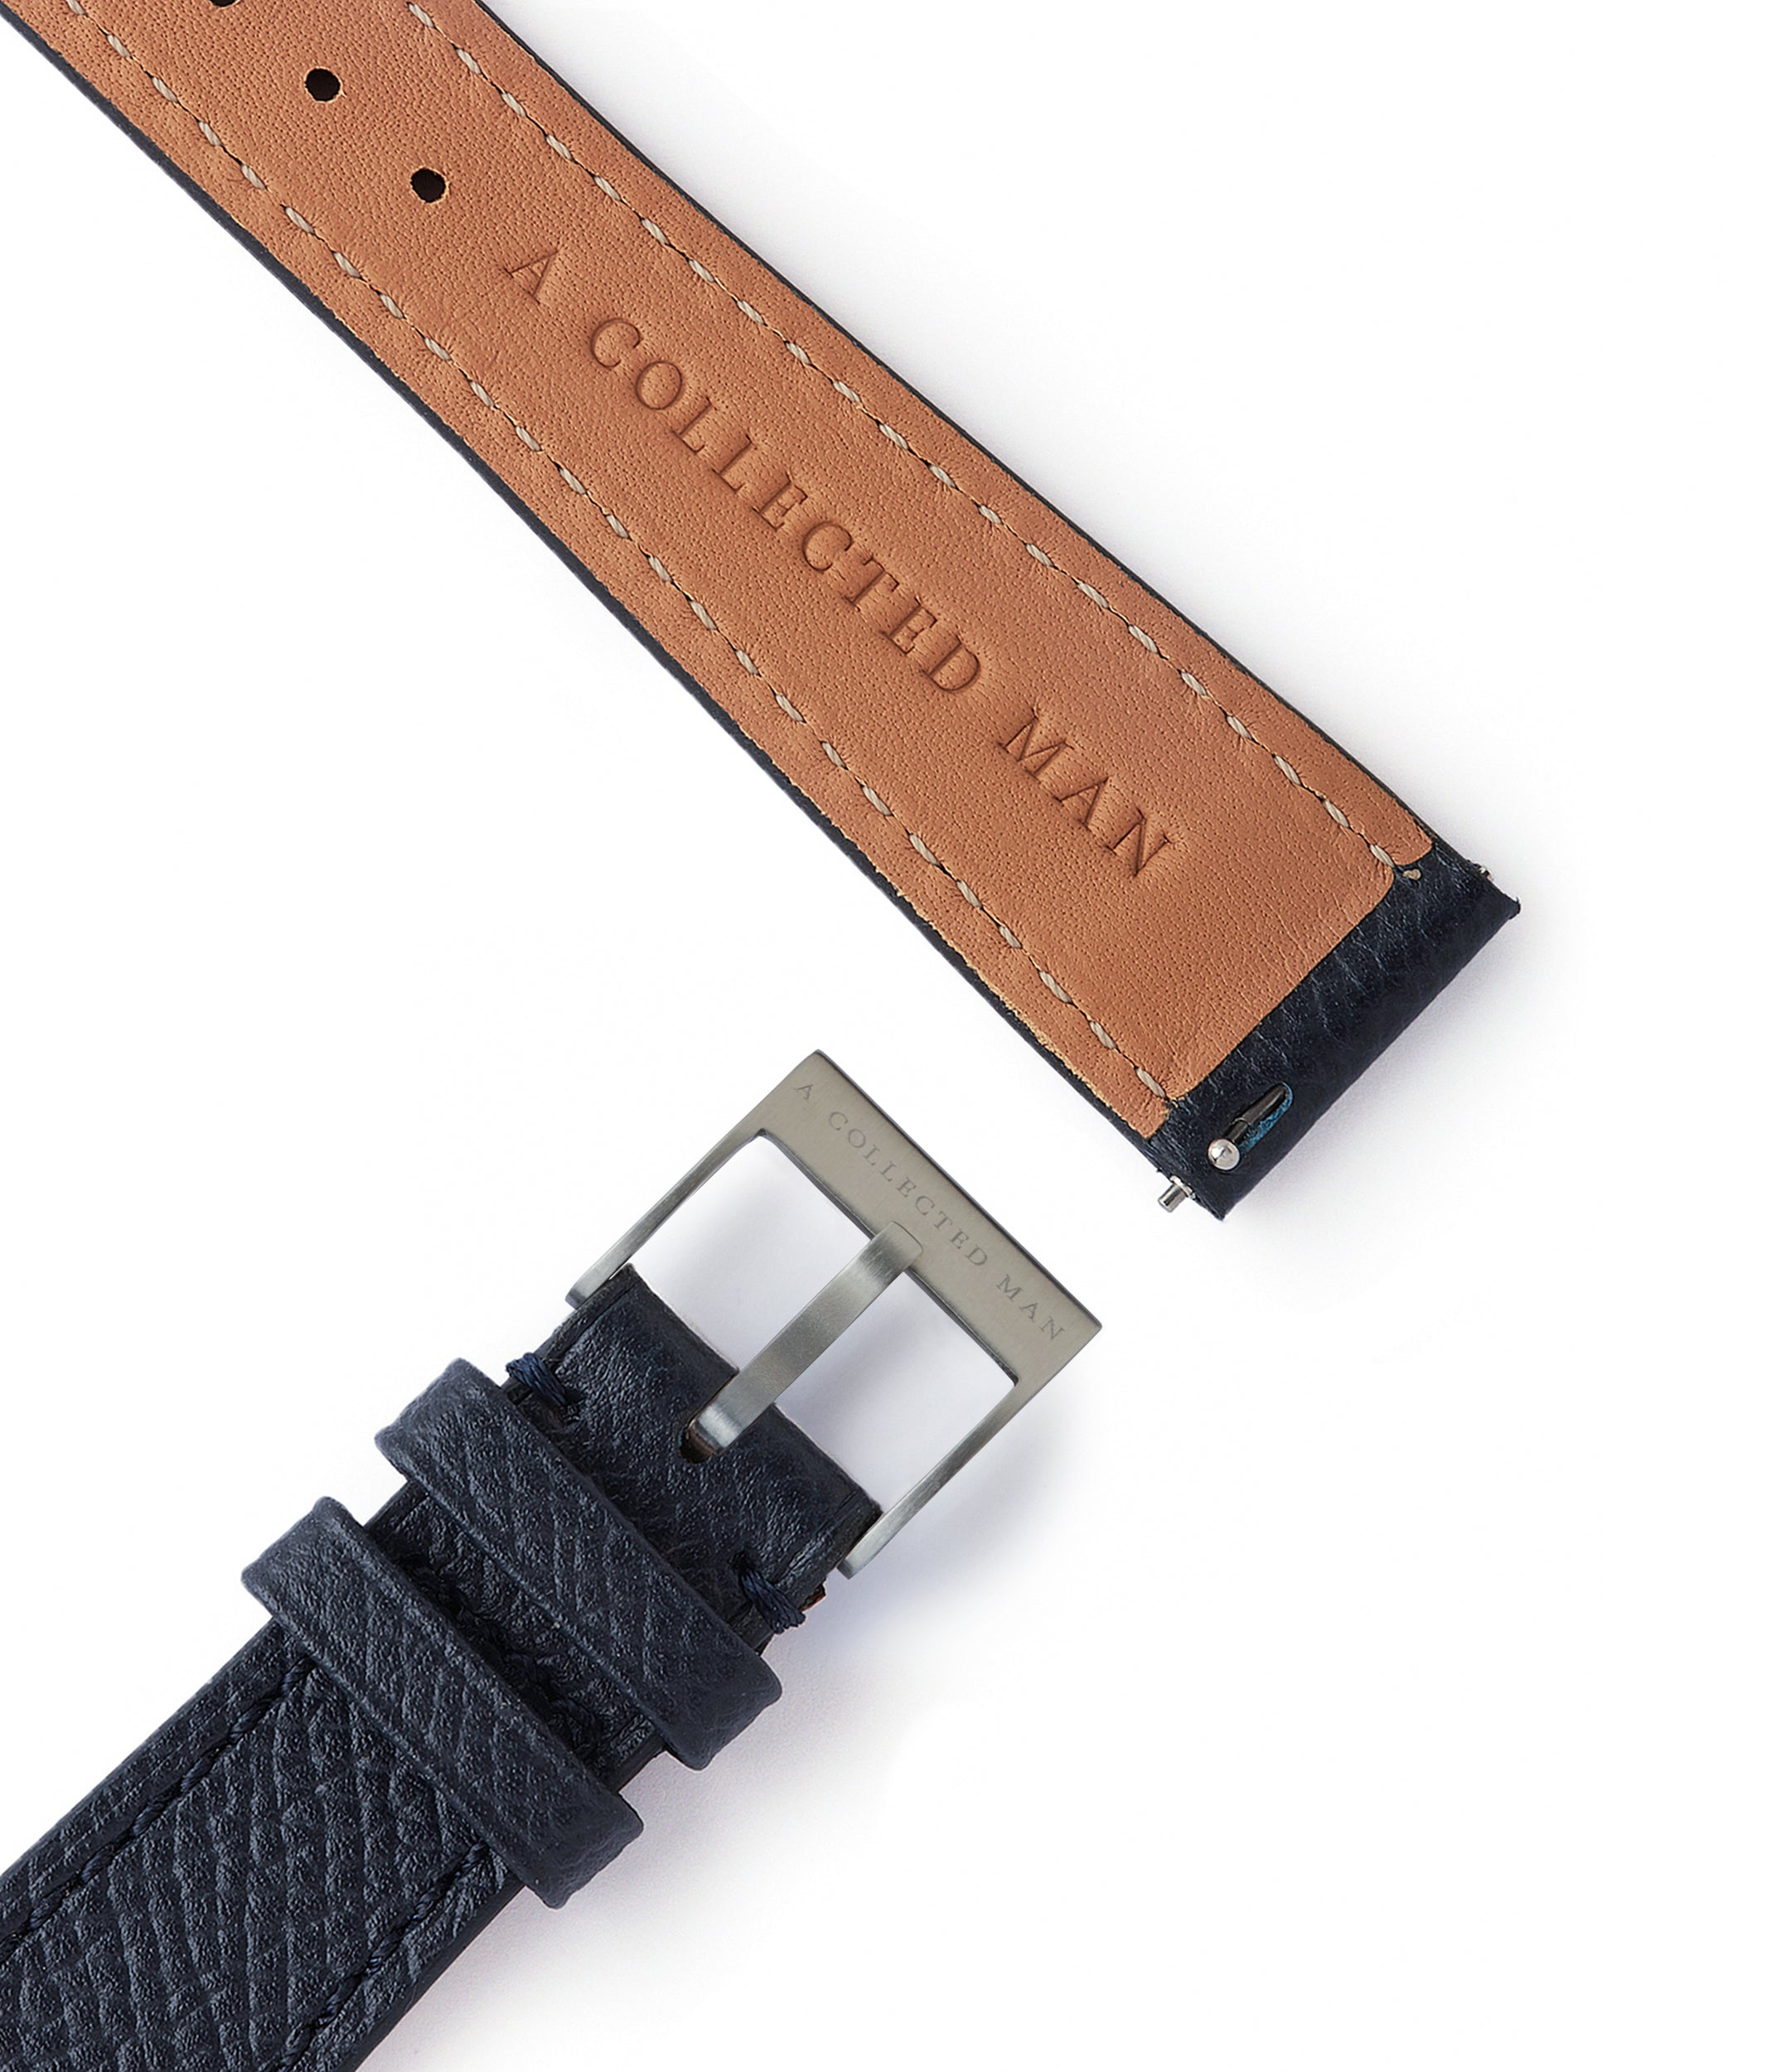 blue grained leather watch strap quick-release springbars La Rochelle Molequin for sale order online at A Collected Man London